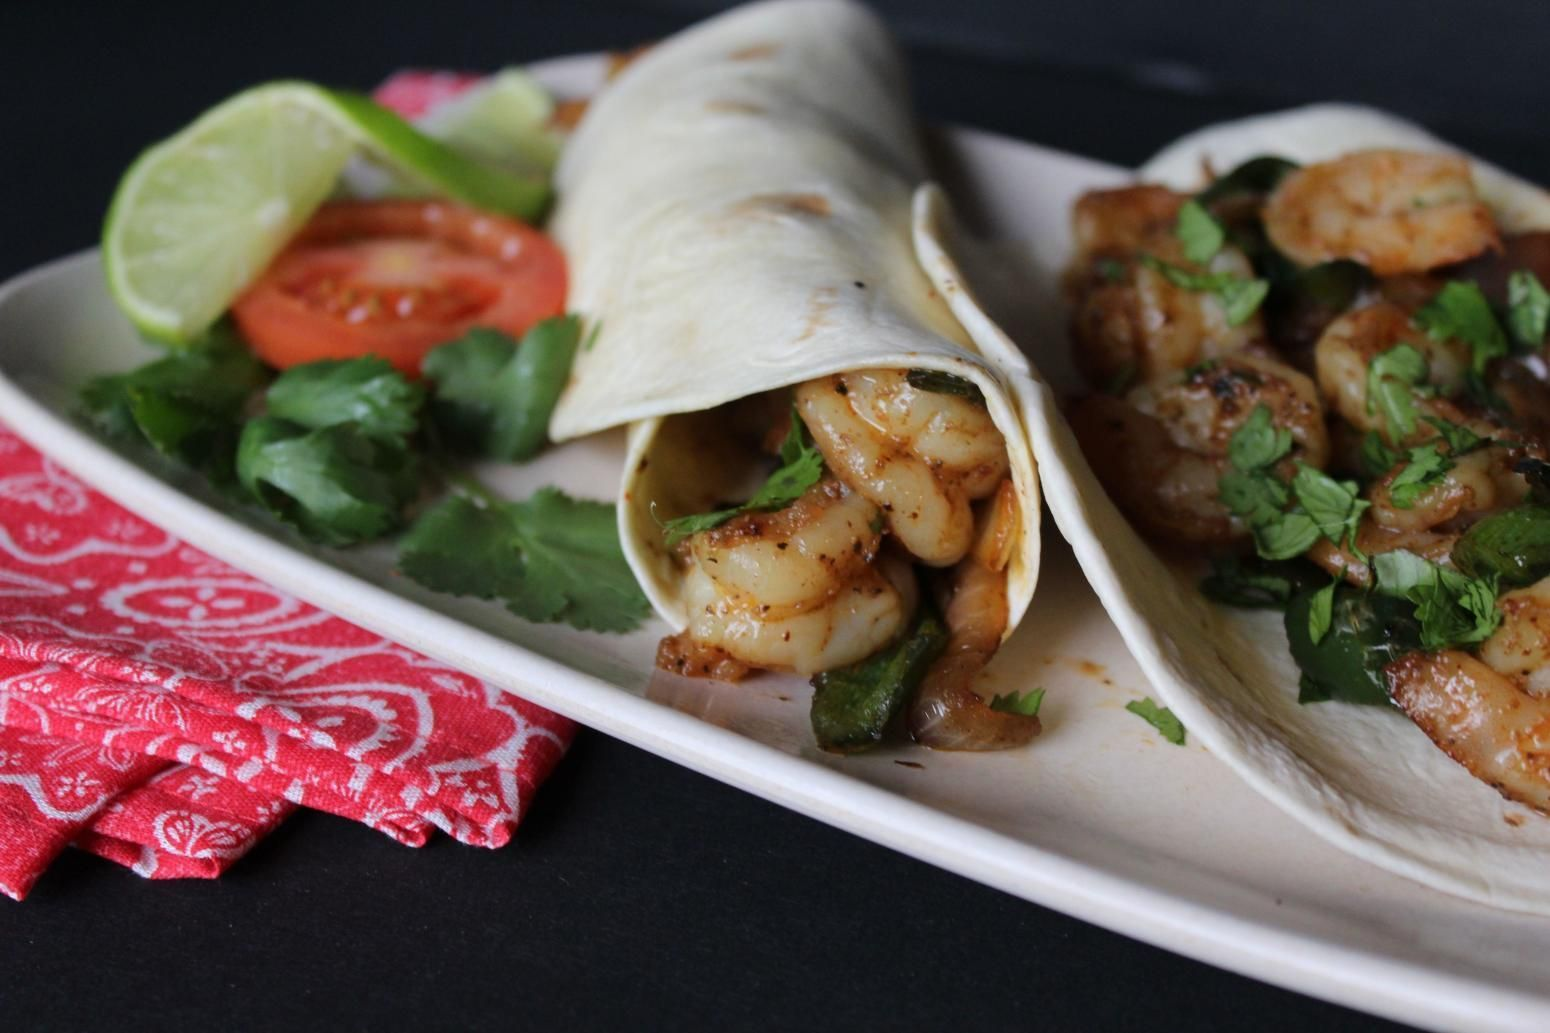 #perfection #seasoned #fajitas #shrimp #amount #people #these #right #were #just #two #and #the #for #toShrimp Fajitas for Two Shrimp Fajitas for Two | These shrimp fajitas were seasoned to perfection and just the right amount for two people.Shrimp Fajitas for Two | These shrimp fajitas were seasoned to perfection and just the right amount for two people. #shrimpfajitas #perfection #seasoned #fajitas #shrimp #amount #people #these #right #were #just #two #and #the #for #toShrimp Fajitas for Two #shrimpfajitas